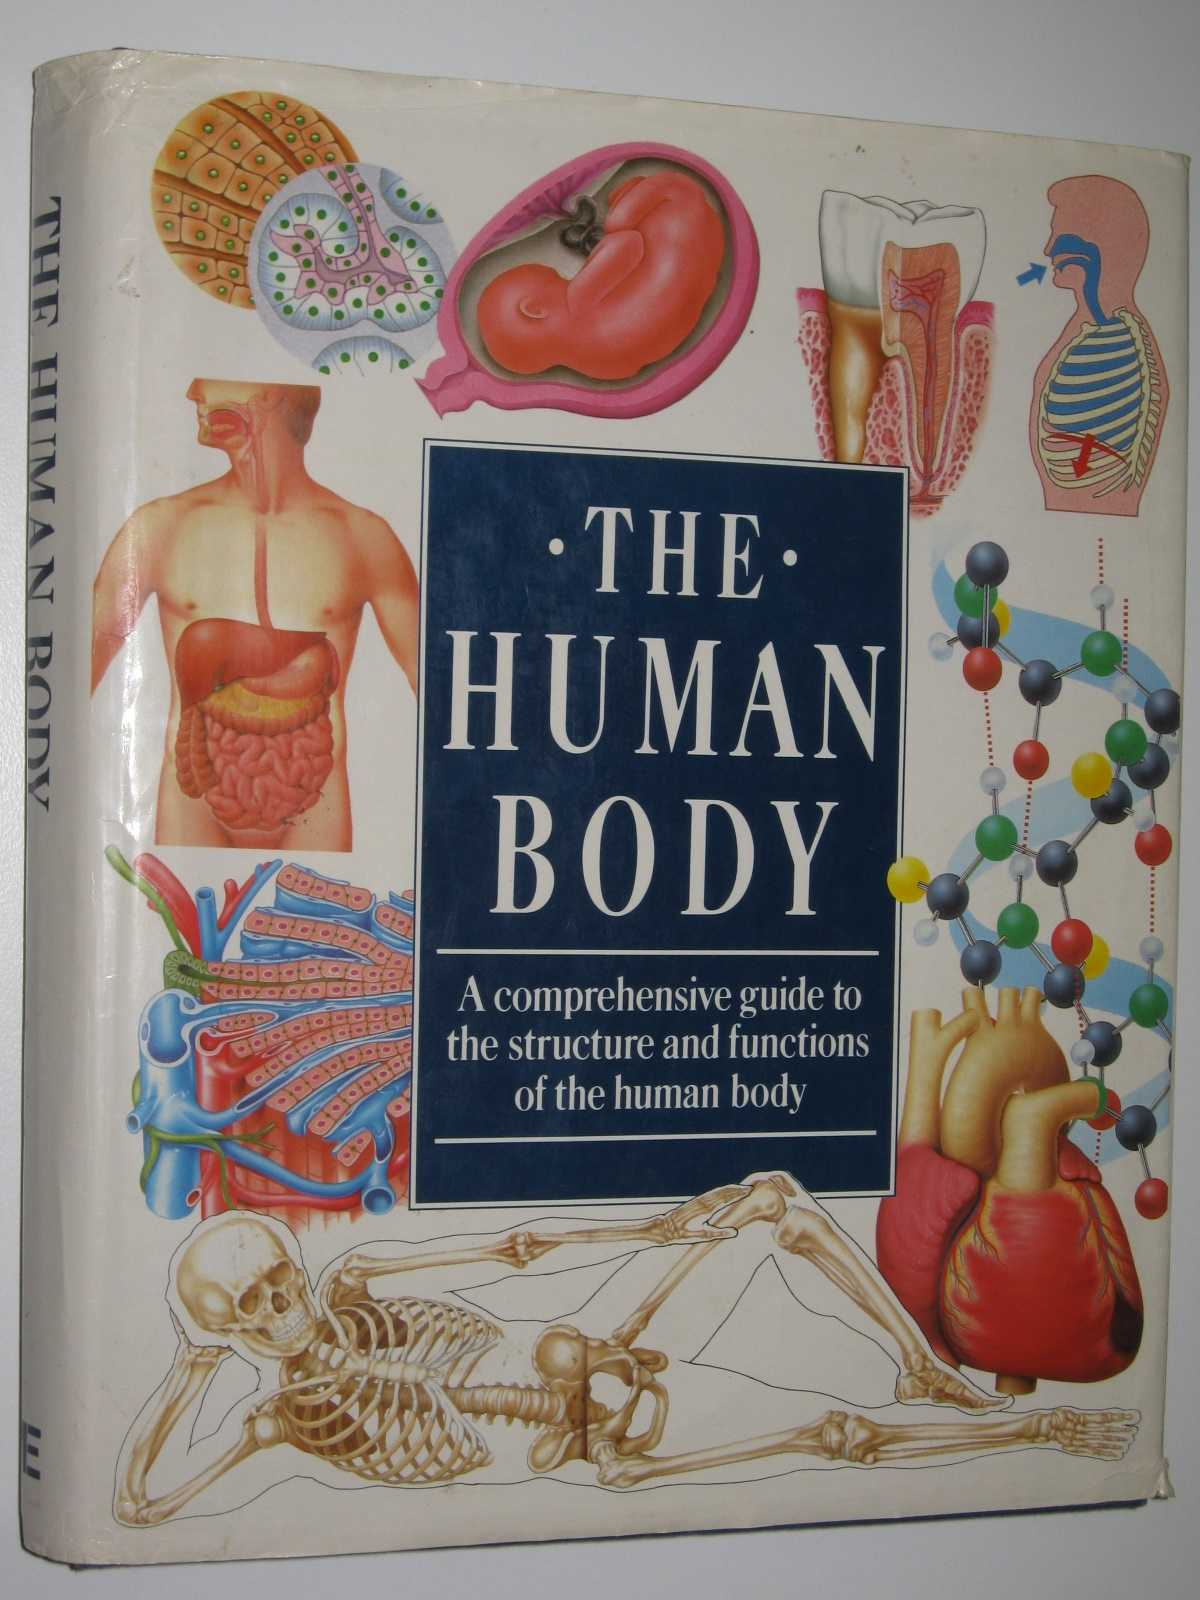 The Human Body : A Comprehensive Guide to the Structure and Functions of the Human Body, Clark, John E. (edited)